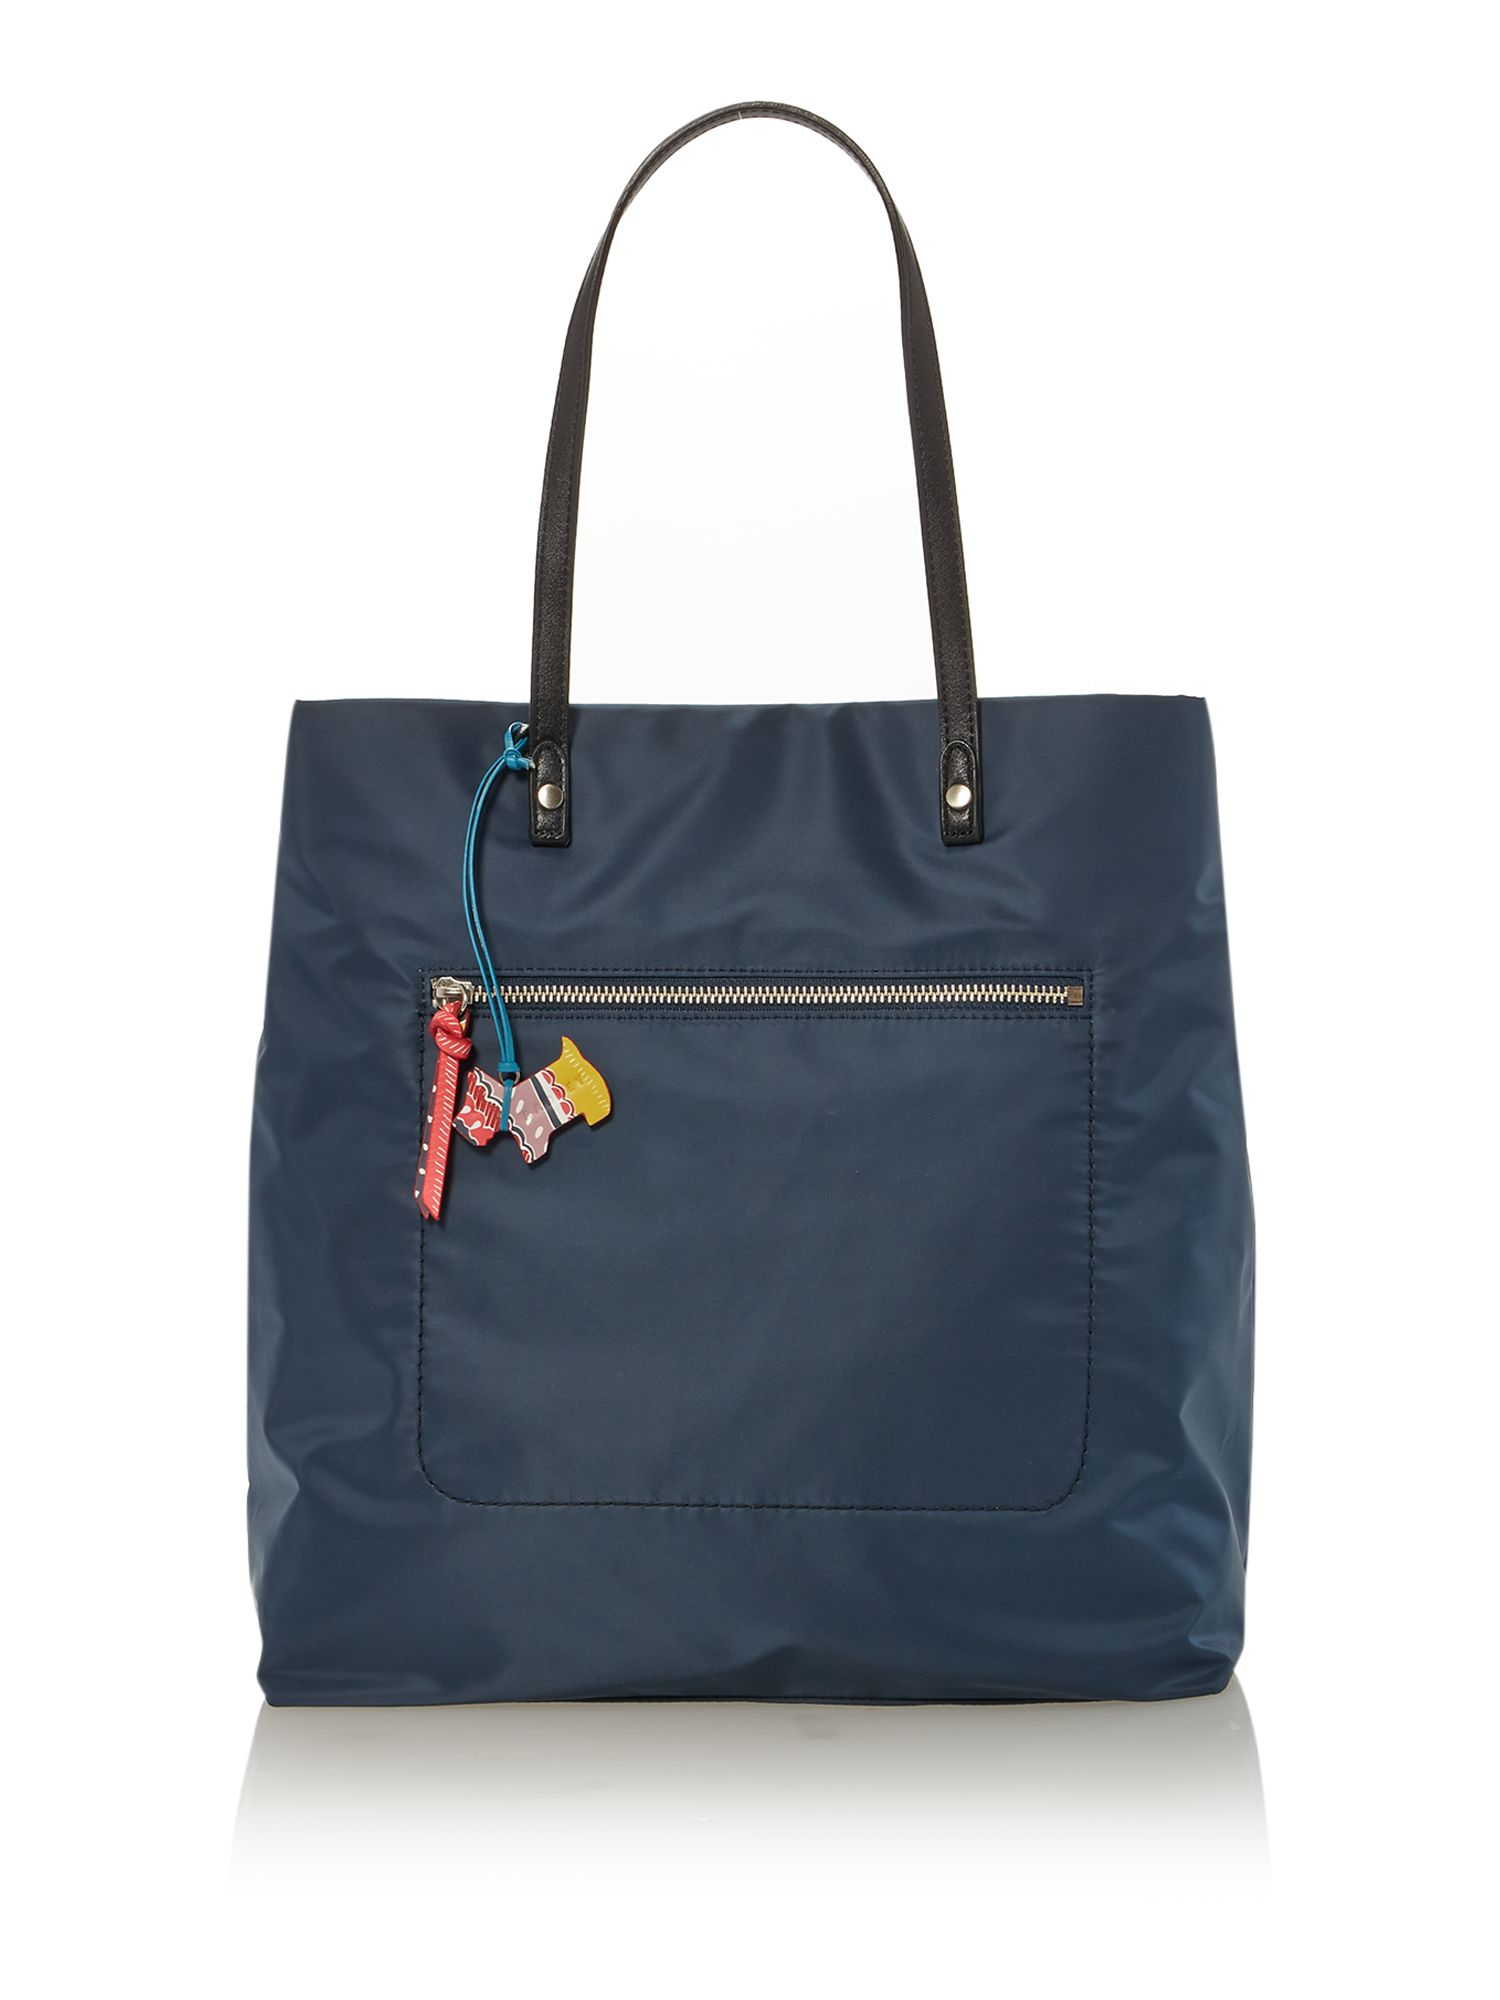 Petticoat navy large ziptop ew leather tote bag